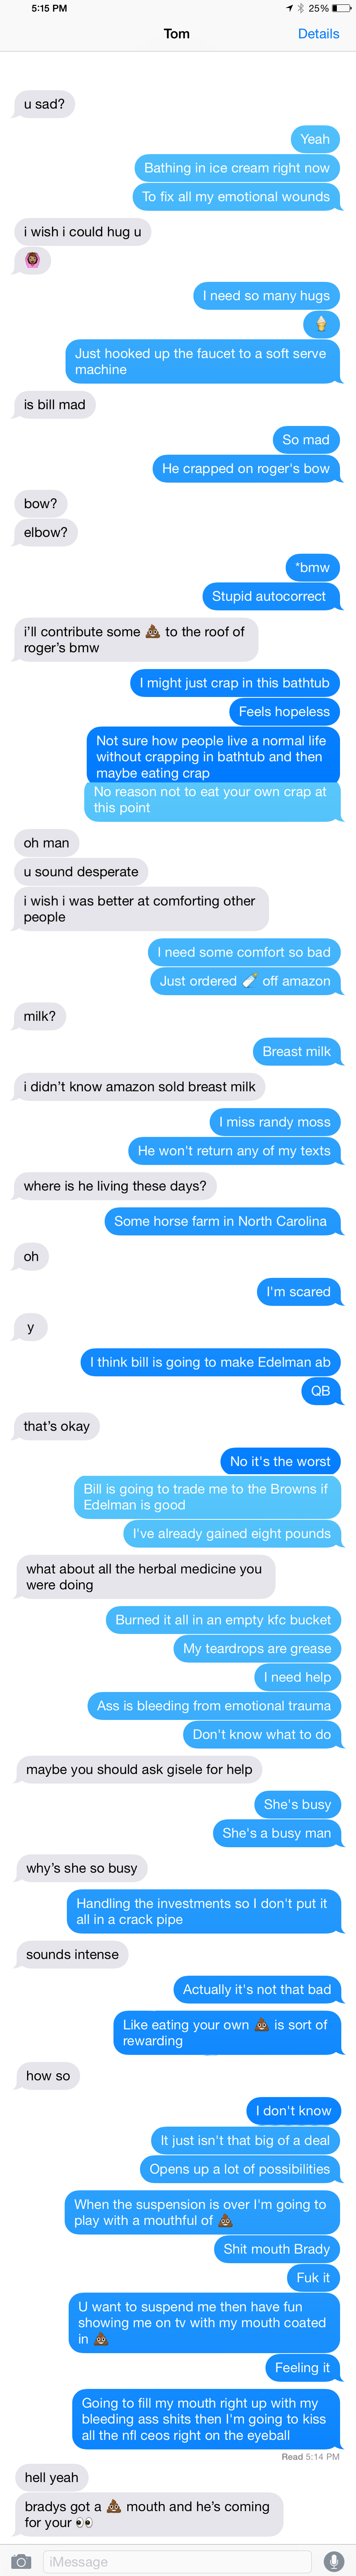 text messages from tom brady